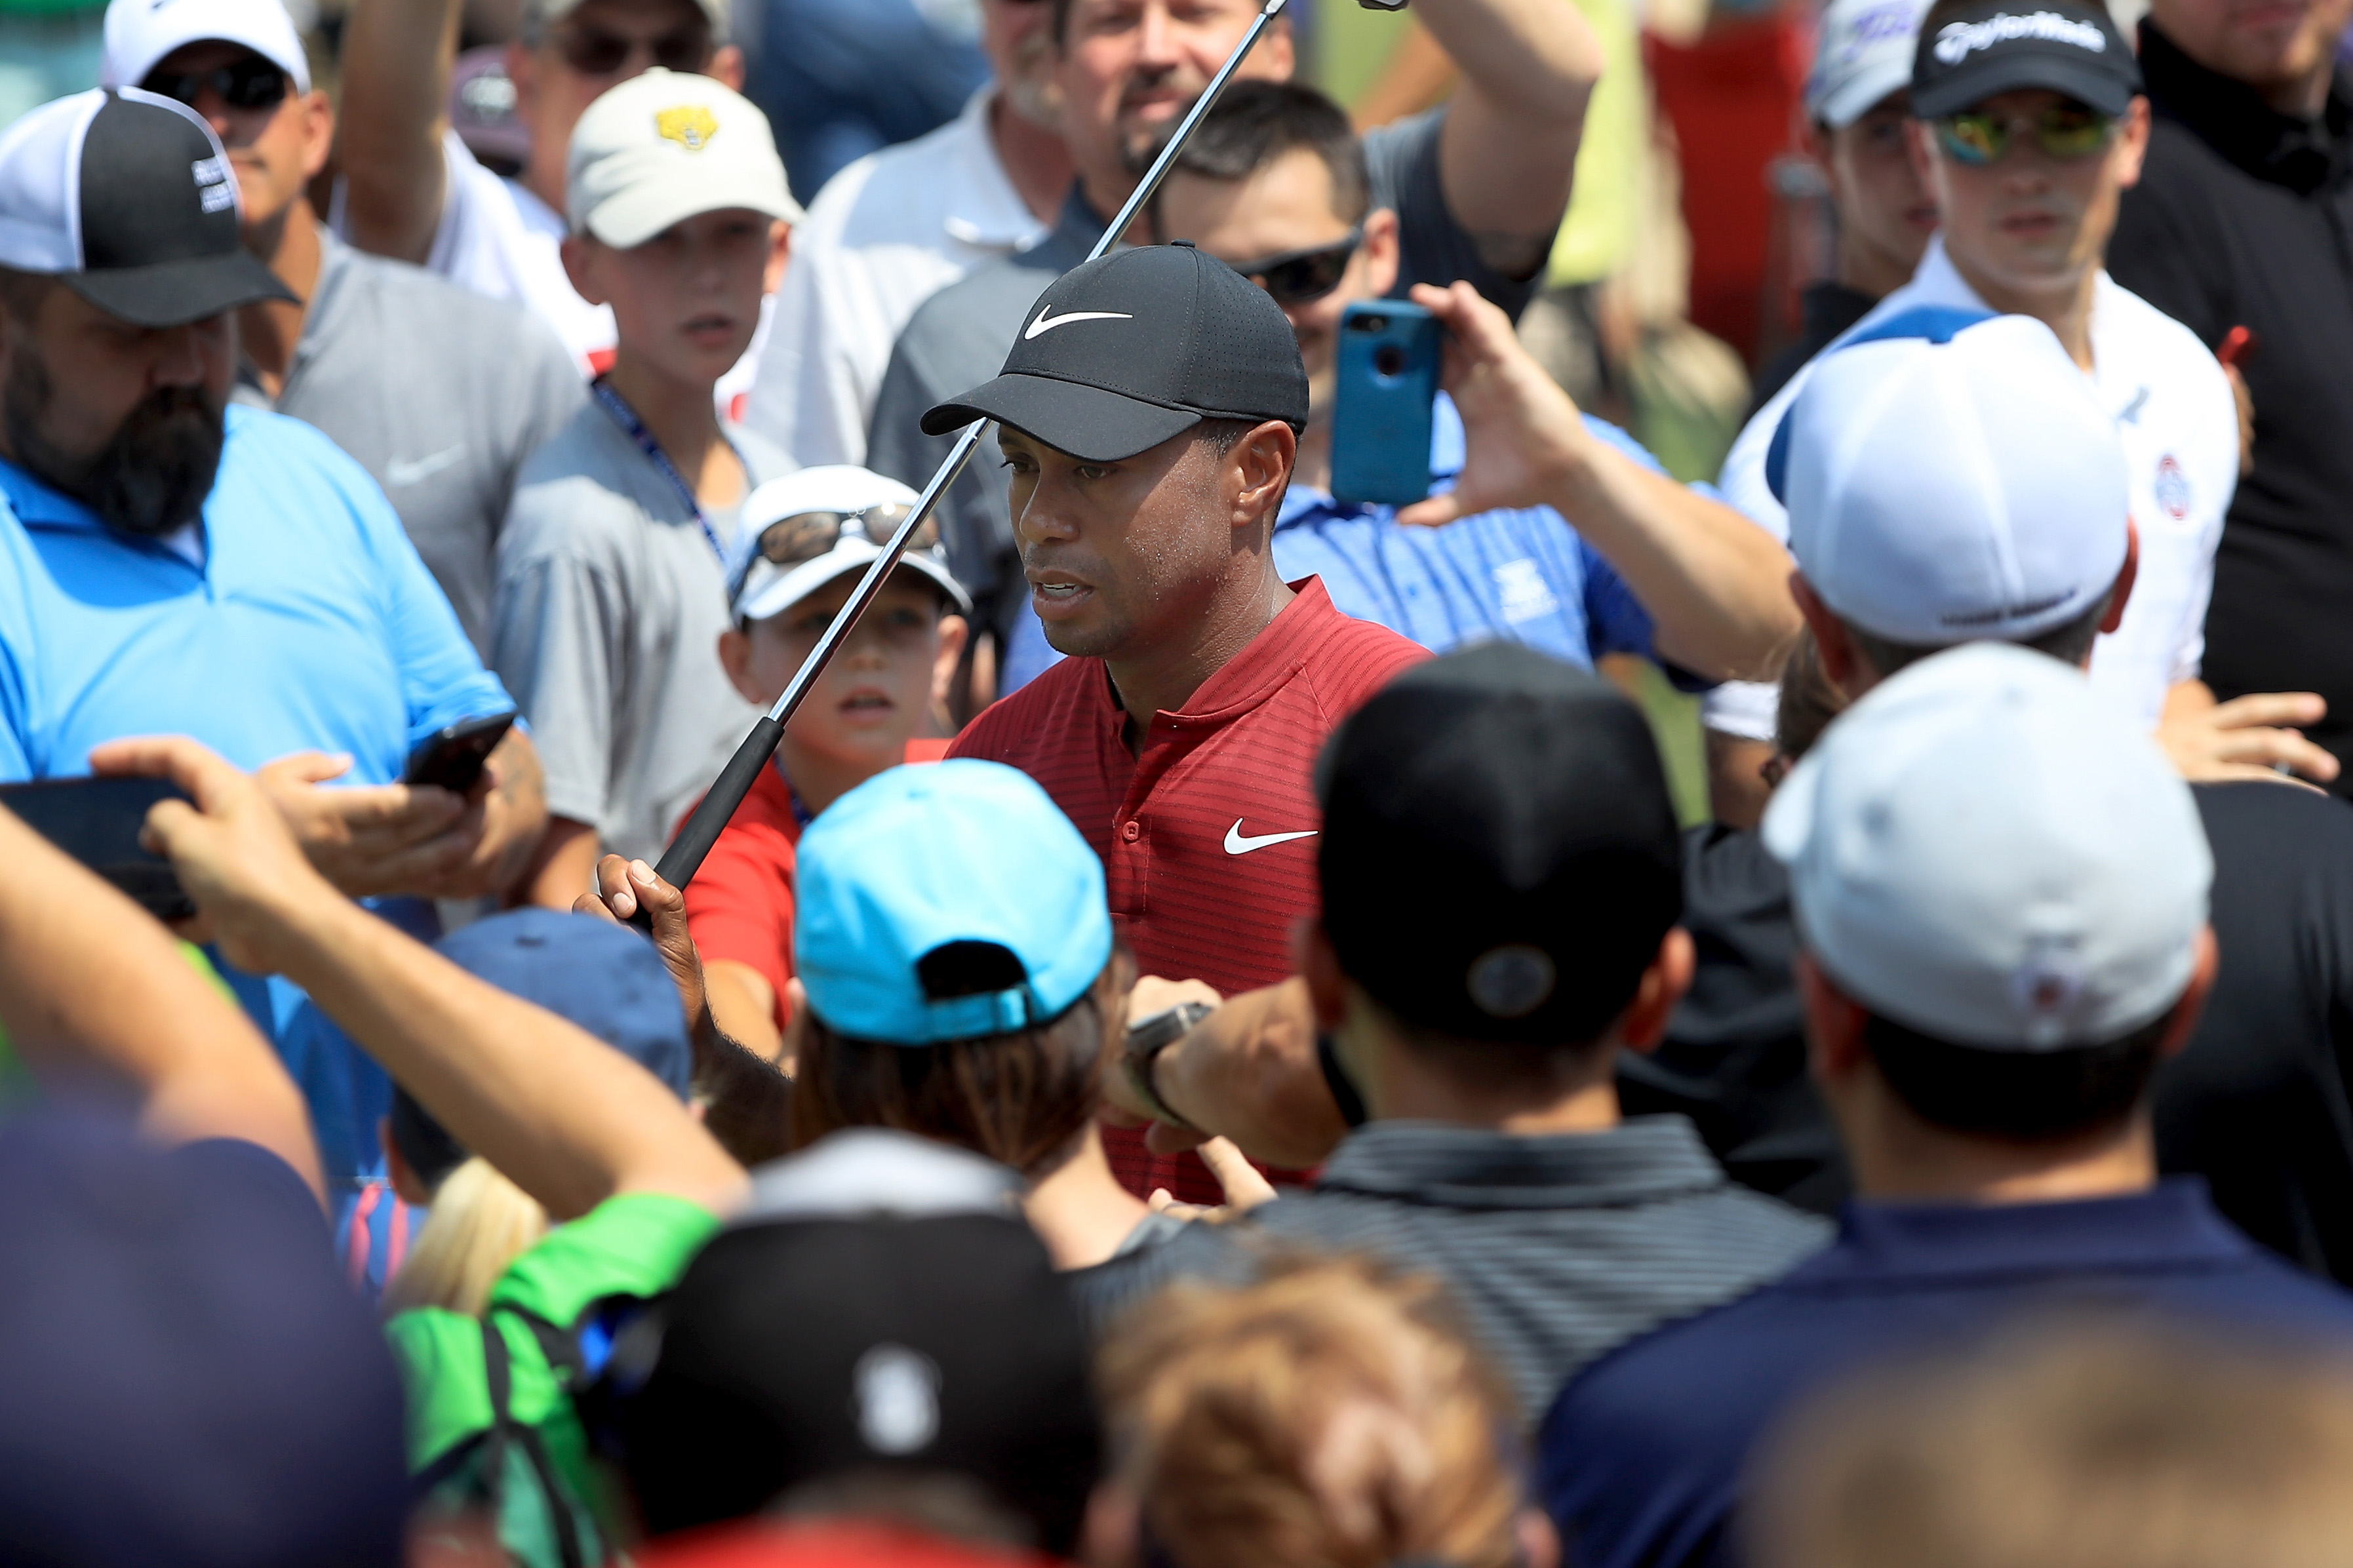 AKRON, OH - AUGUST 05: Tiger Woods walks through the crowd during the World Golf Championships-Bridgestone Invitational - Final Round at Firestone Country Club South Course on August 5, 2018 in Akron, Ohio. (Photo by Sam Greenwood/Getty Images)